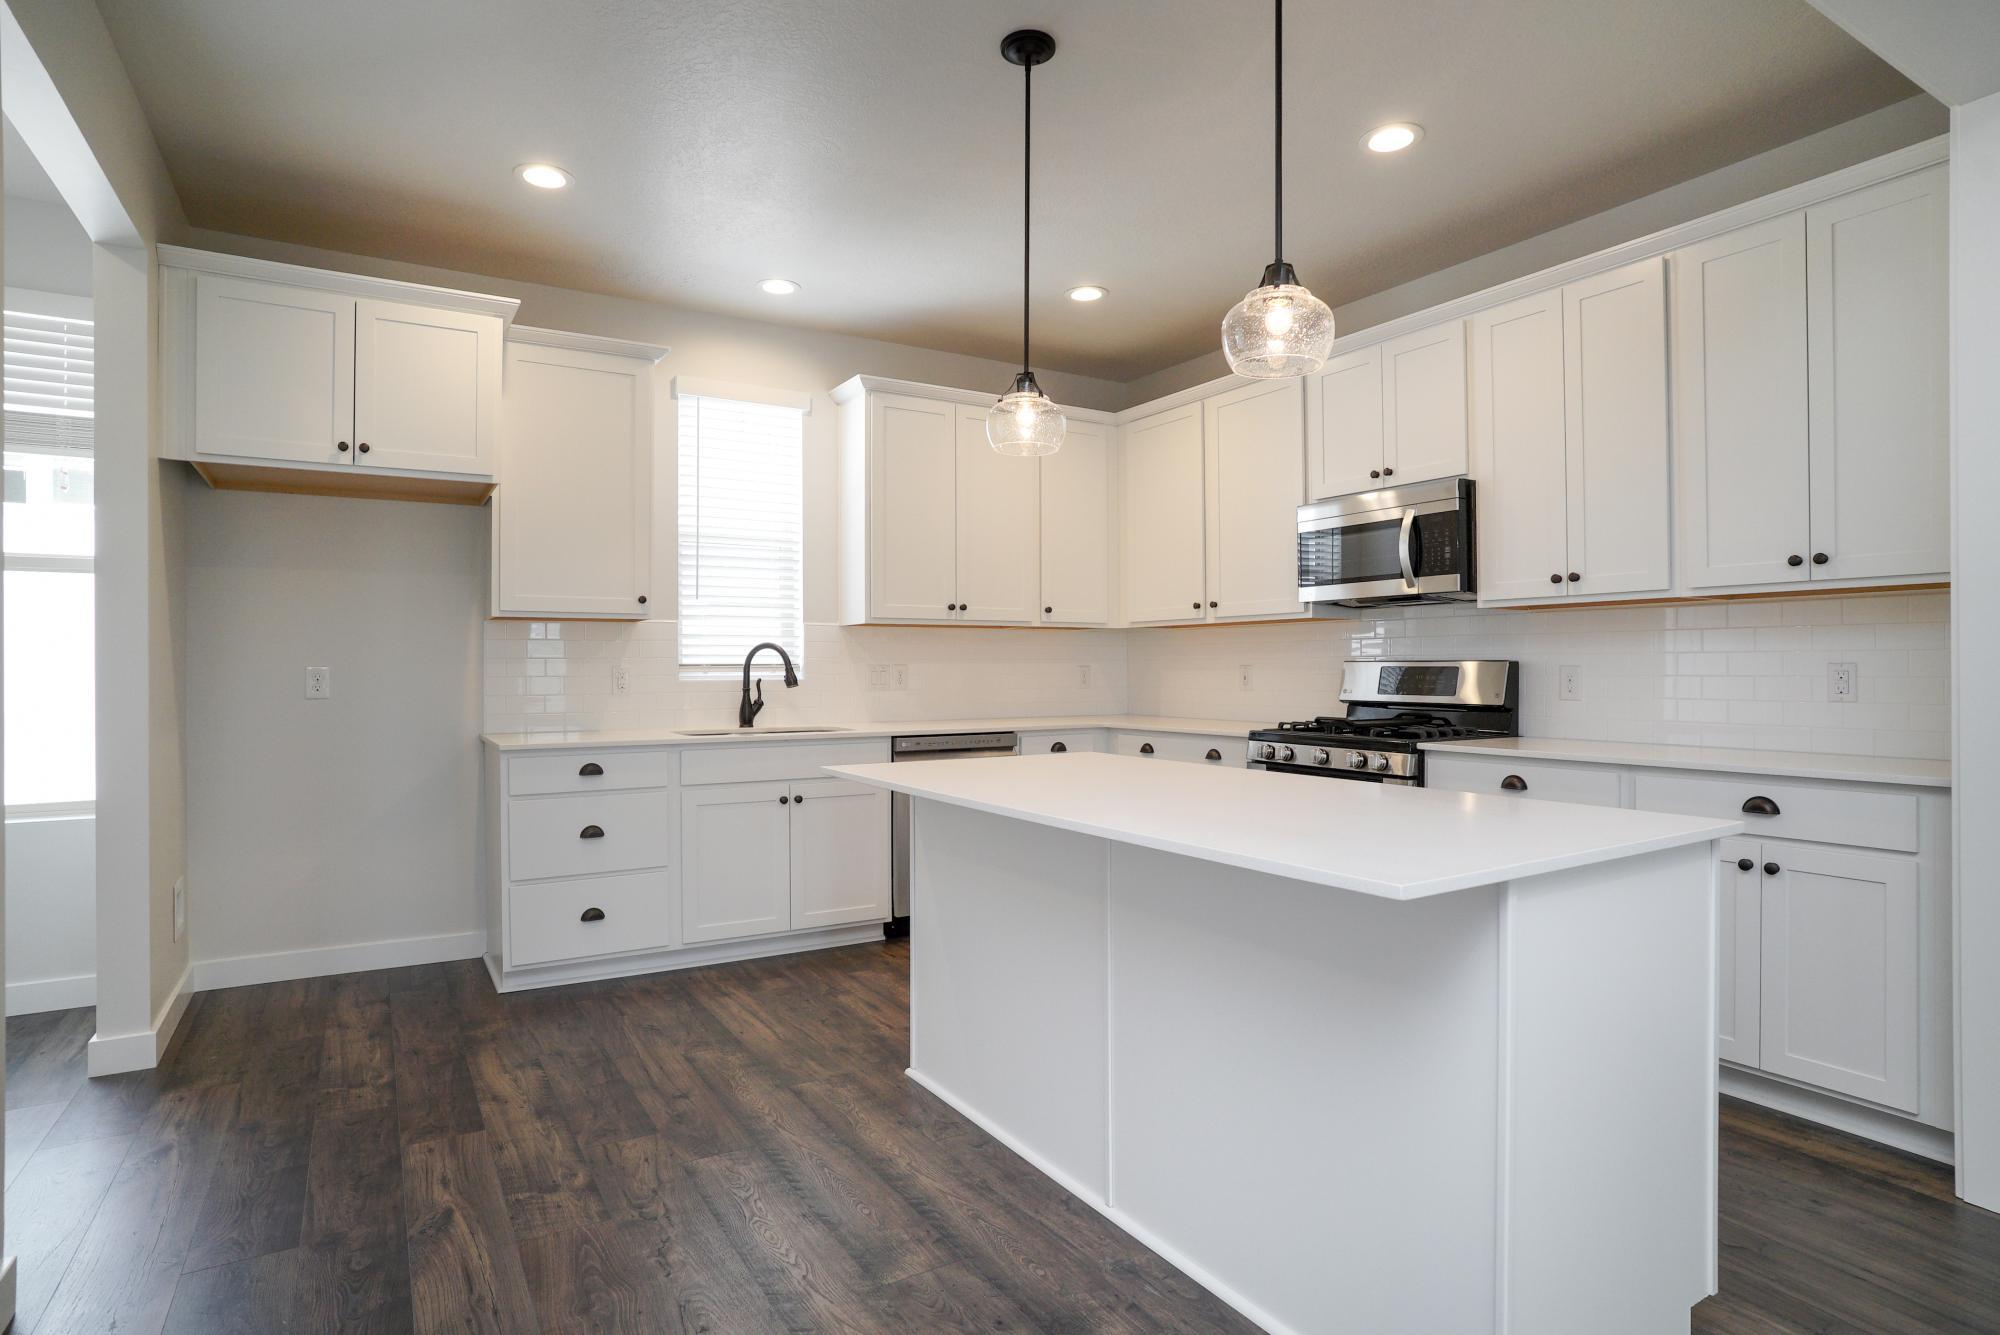 Kitchen featured in the 5803 W Lake Ave #152 By Destination Homes in Salt Lake City-Ogden, UT